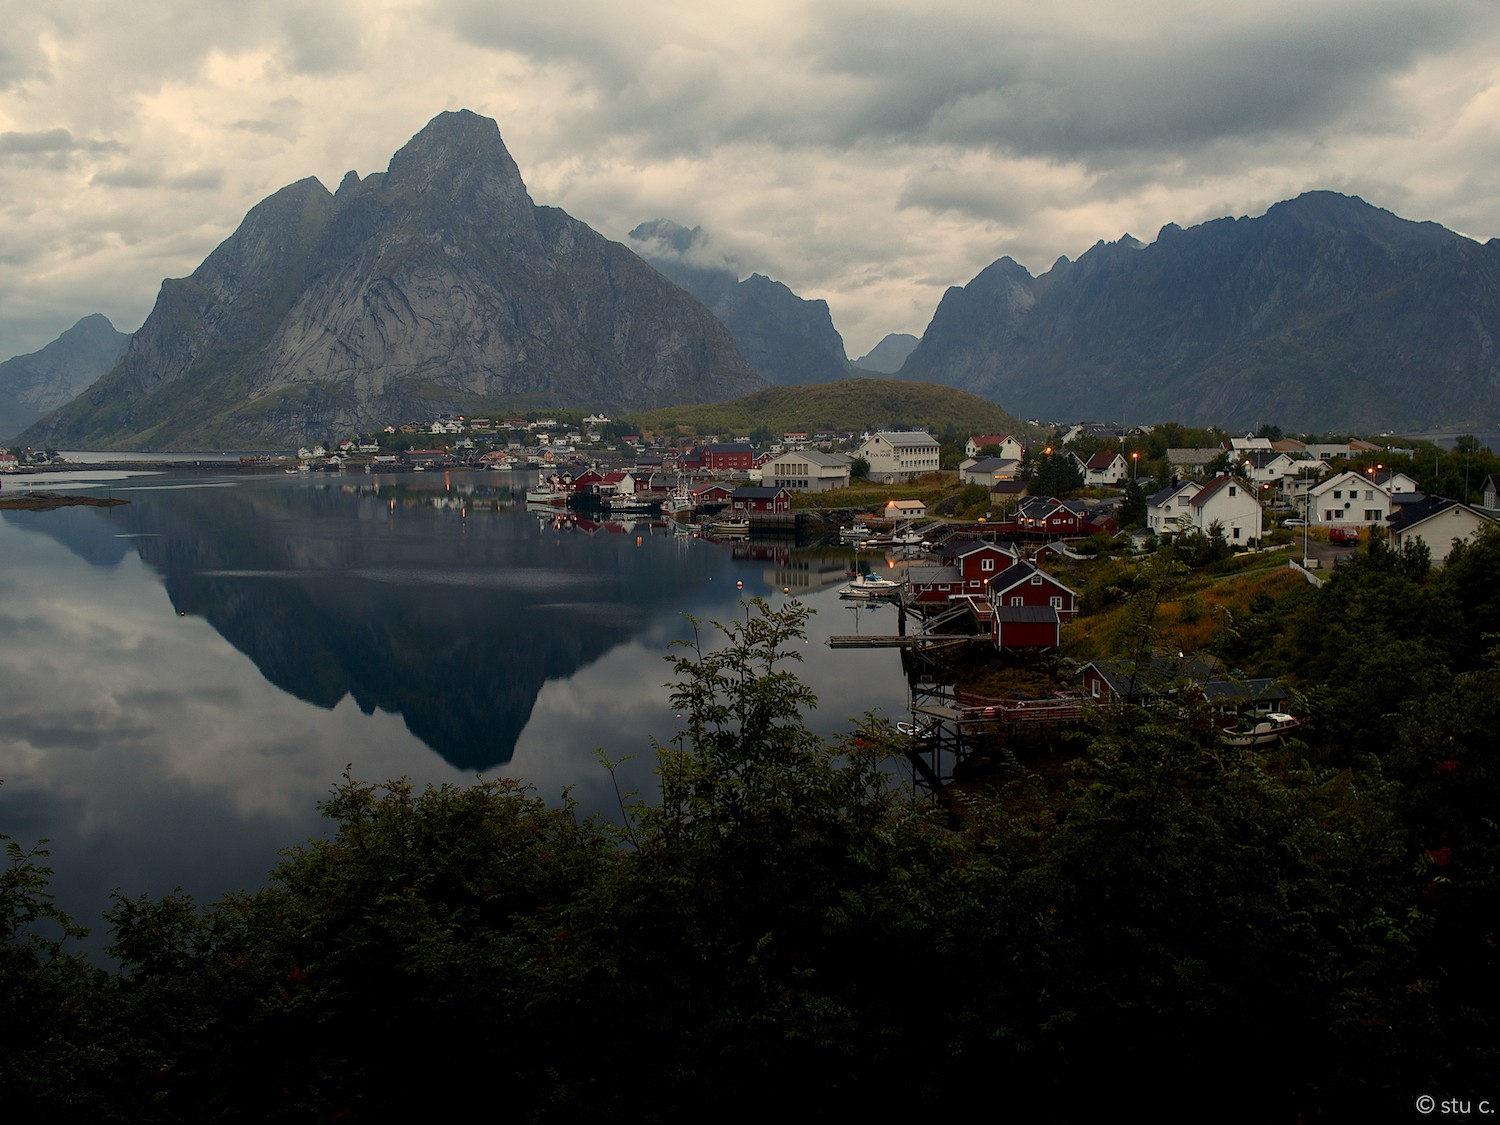 Early morning view back over the bay to the peninsula on which the town of Reine sits